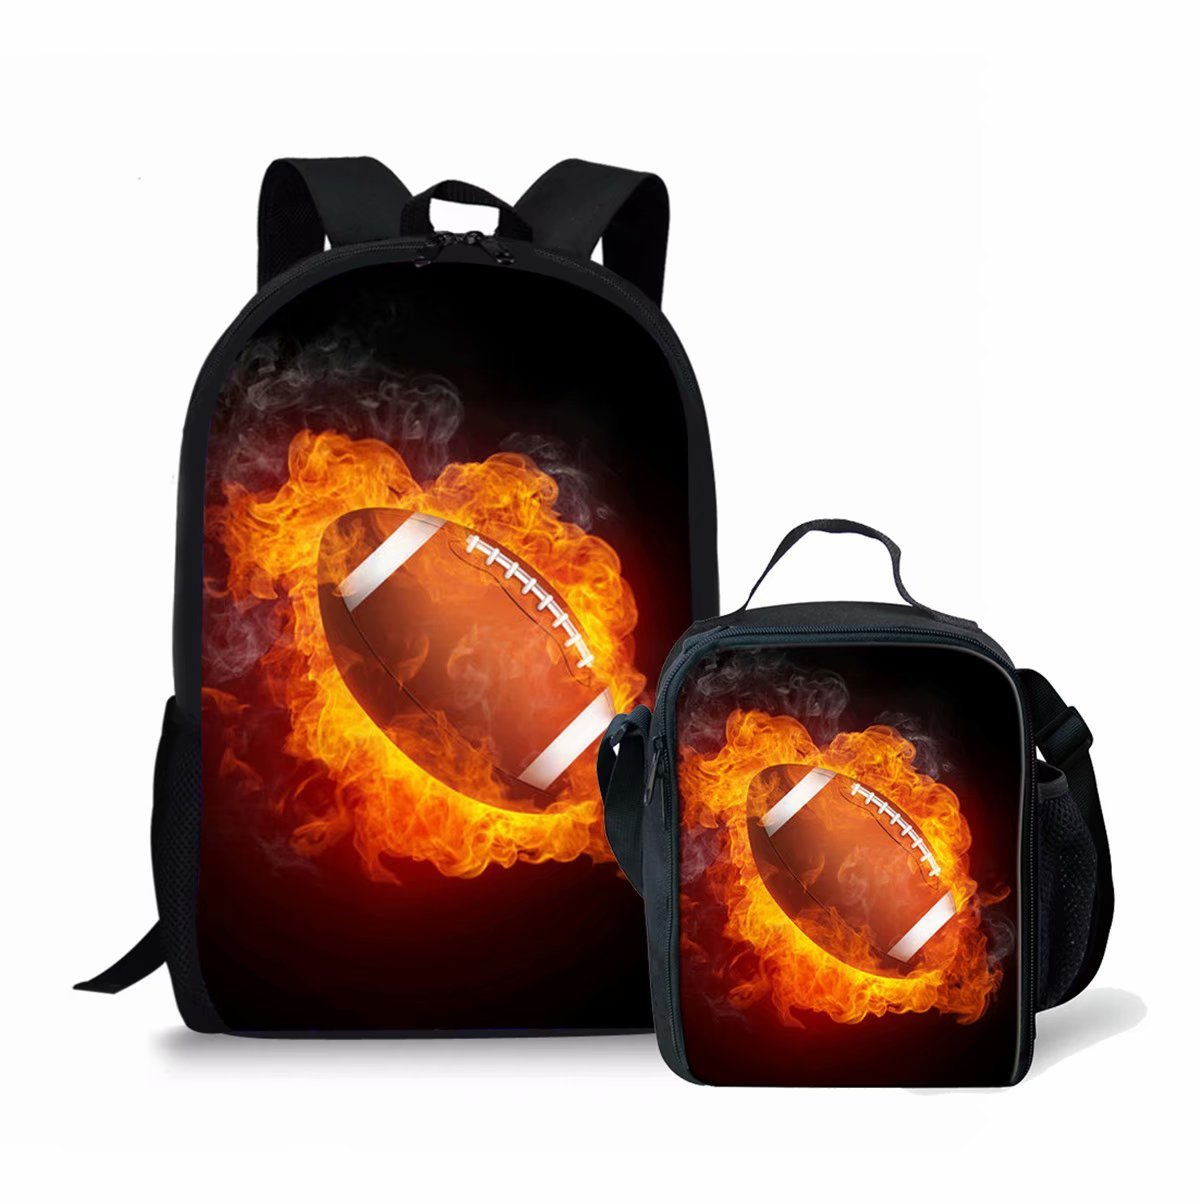 Kids Fire Football Backpack Book Bag Schoolbag + Lunch Bag for Boys Girls Primary School